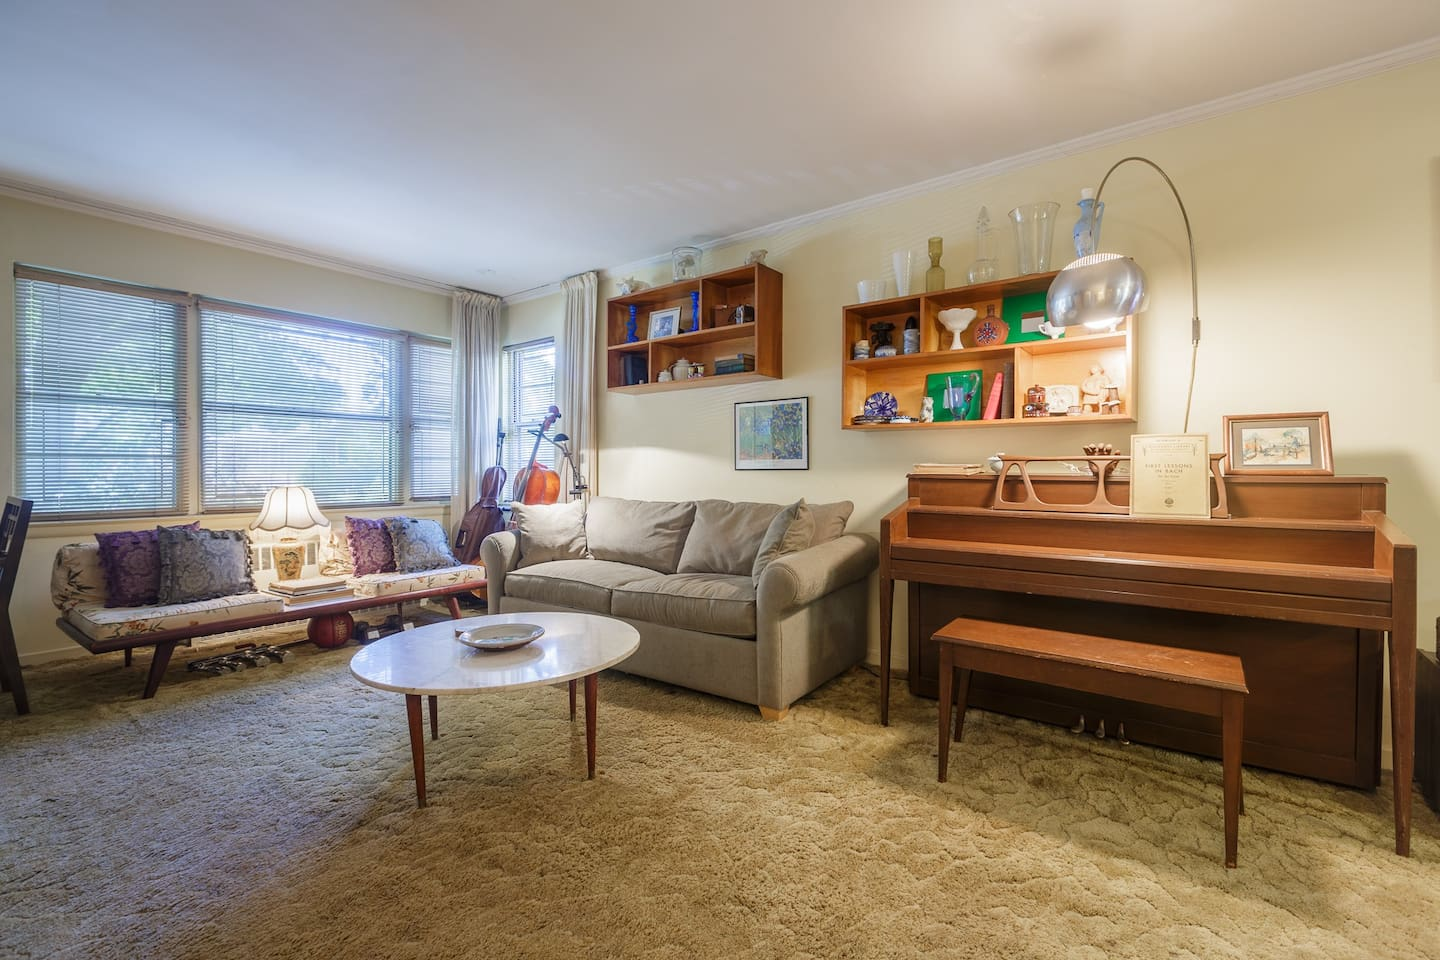 Our living room has plenty of seating, a piano and a pullout couch with a queen mattress.